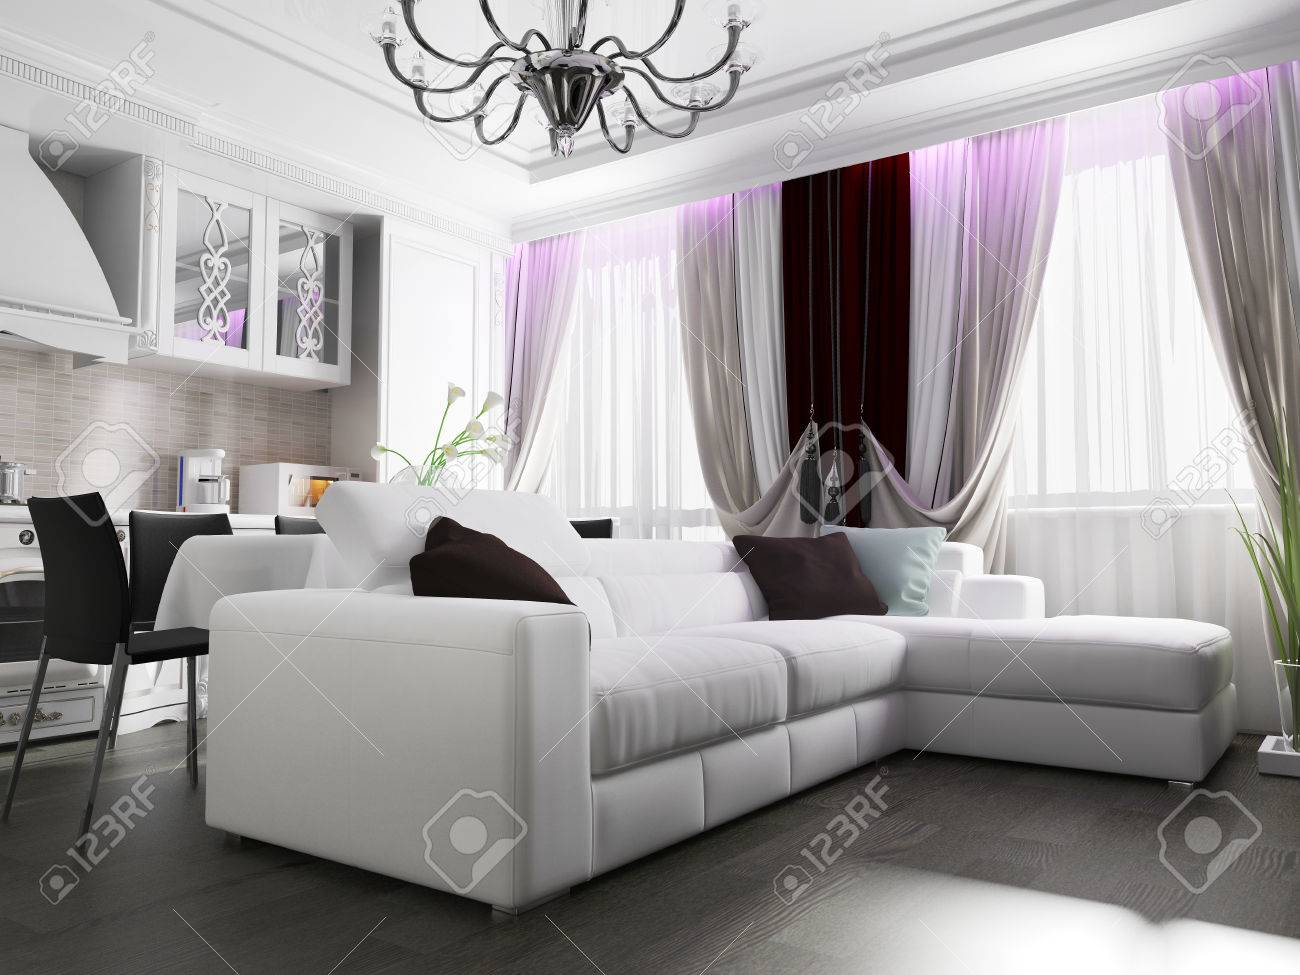 White Living Room Interior. 3 D Rendering Stock Photo, Picture And ...